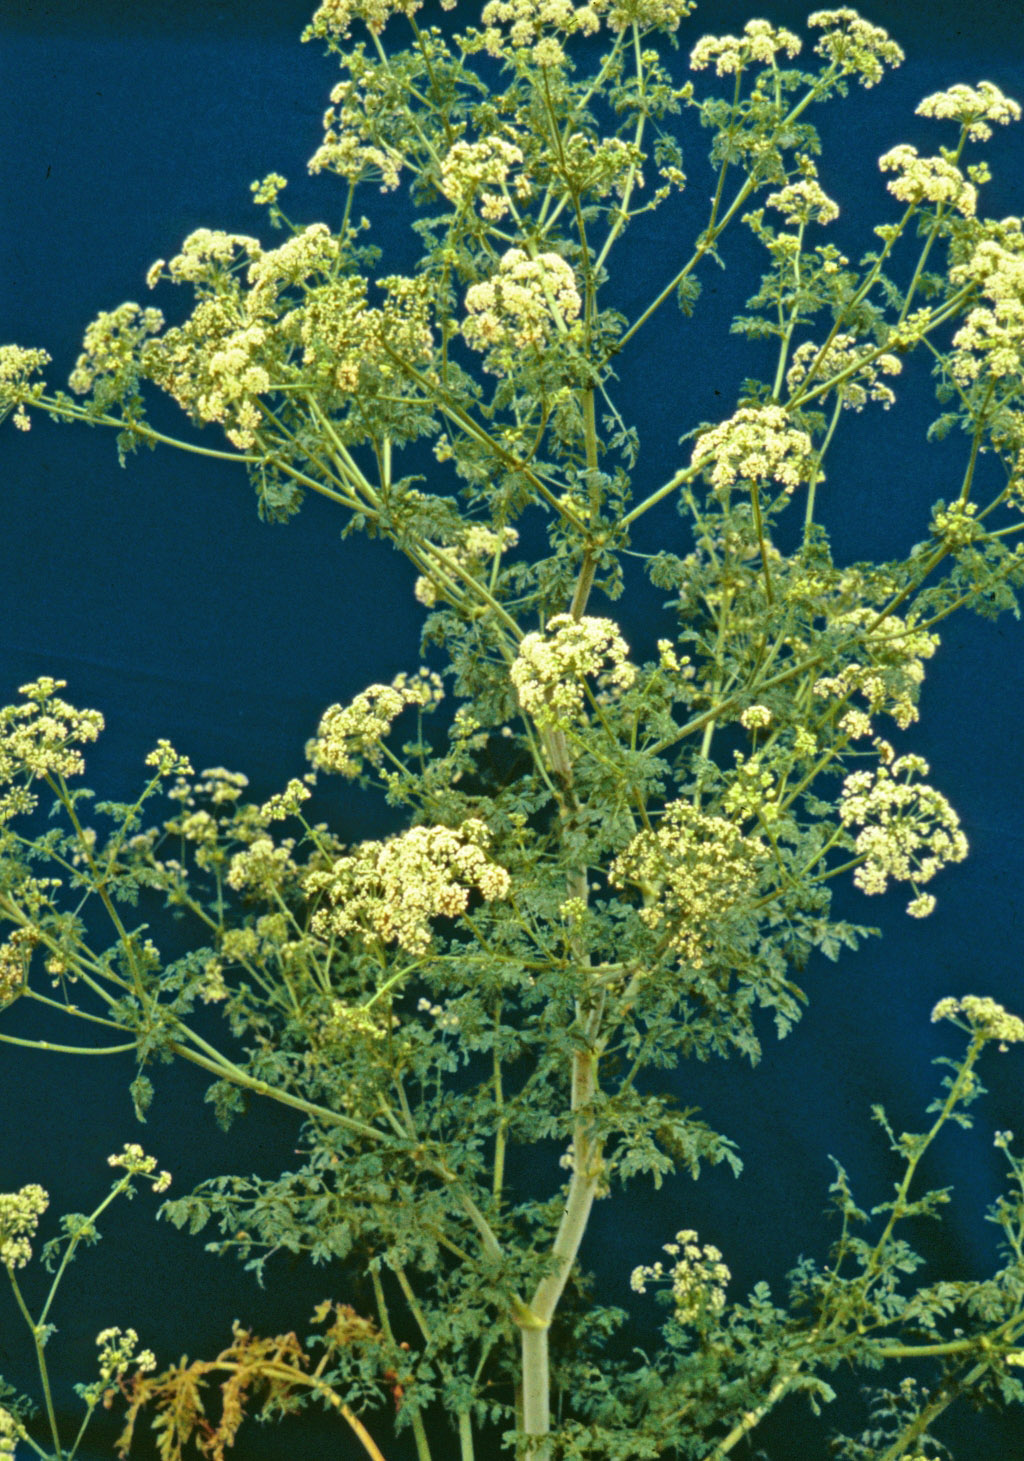 Poison hemlock in flower